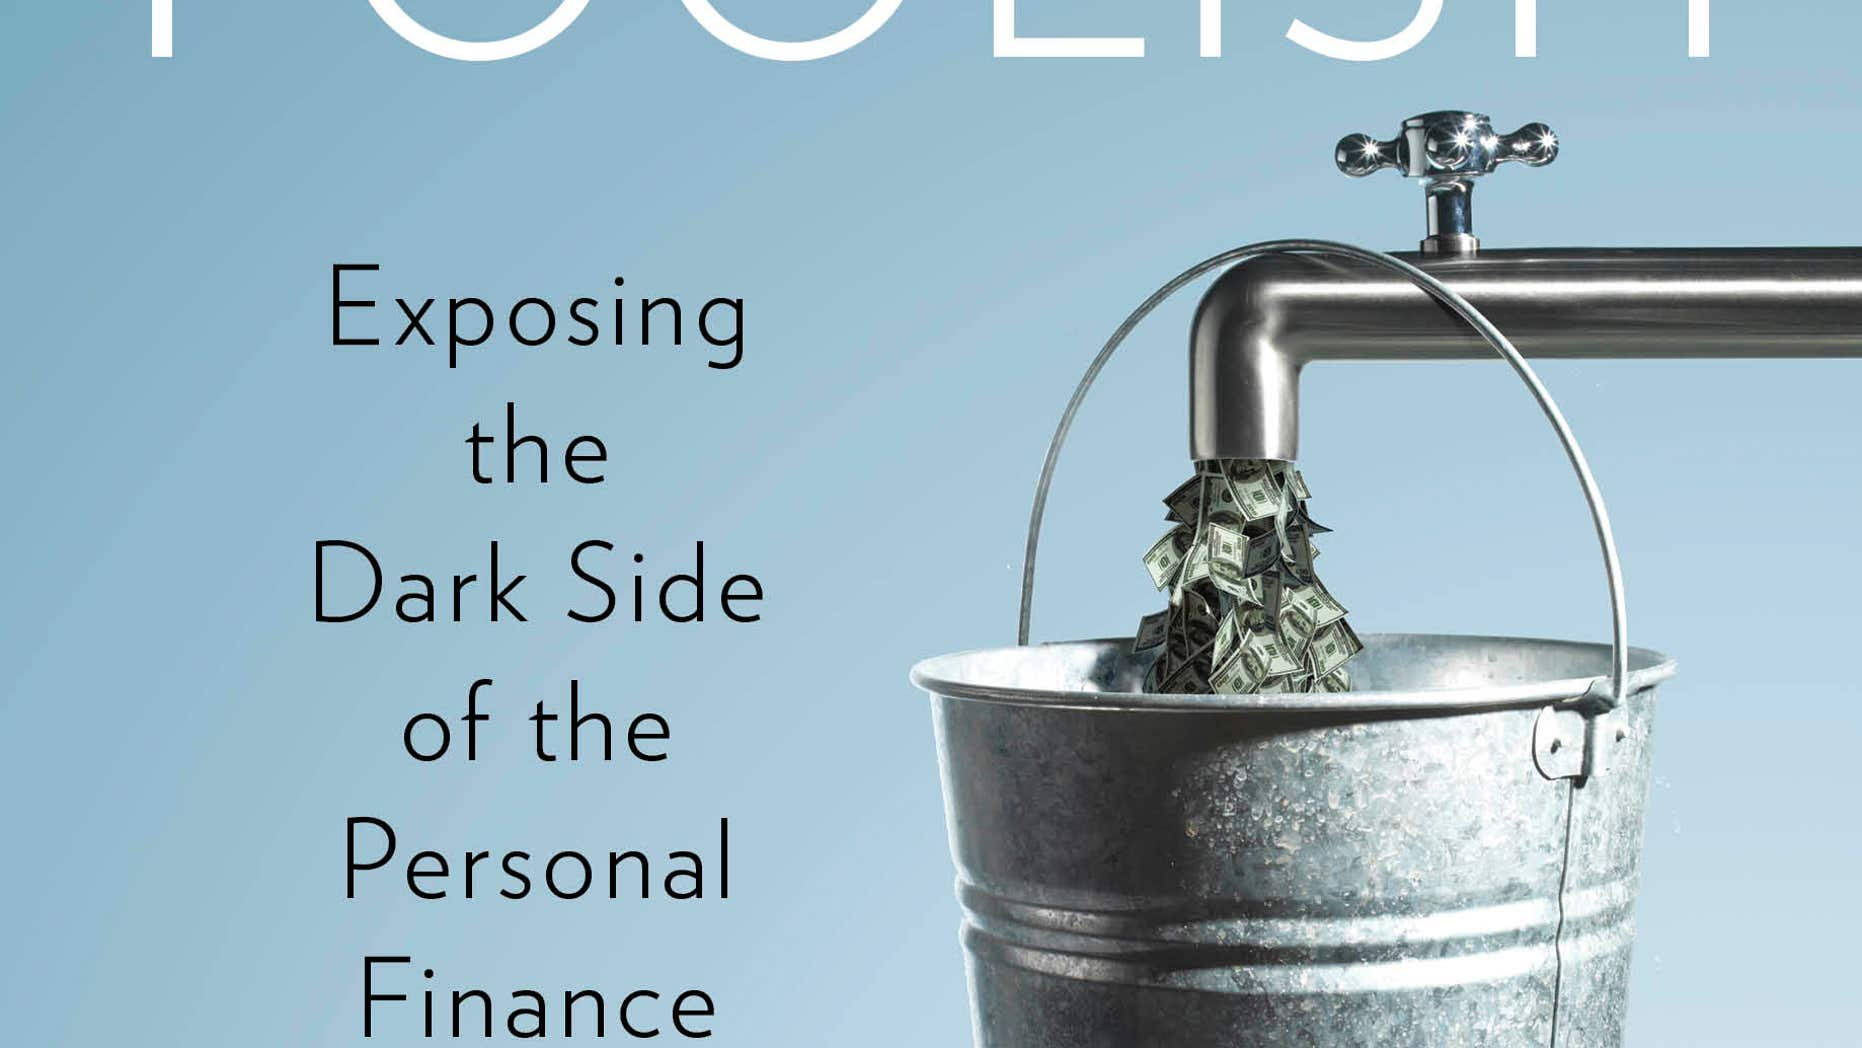 """This book cover image released by Portfolio/Penguin shows """"Pound Foolish: Exposing the Dark Side of the Personal Finance Industry,"""" by Helaine Olen.  (AP Photo/Portfolio/Penguin)"""